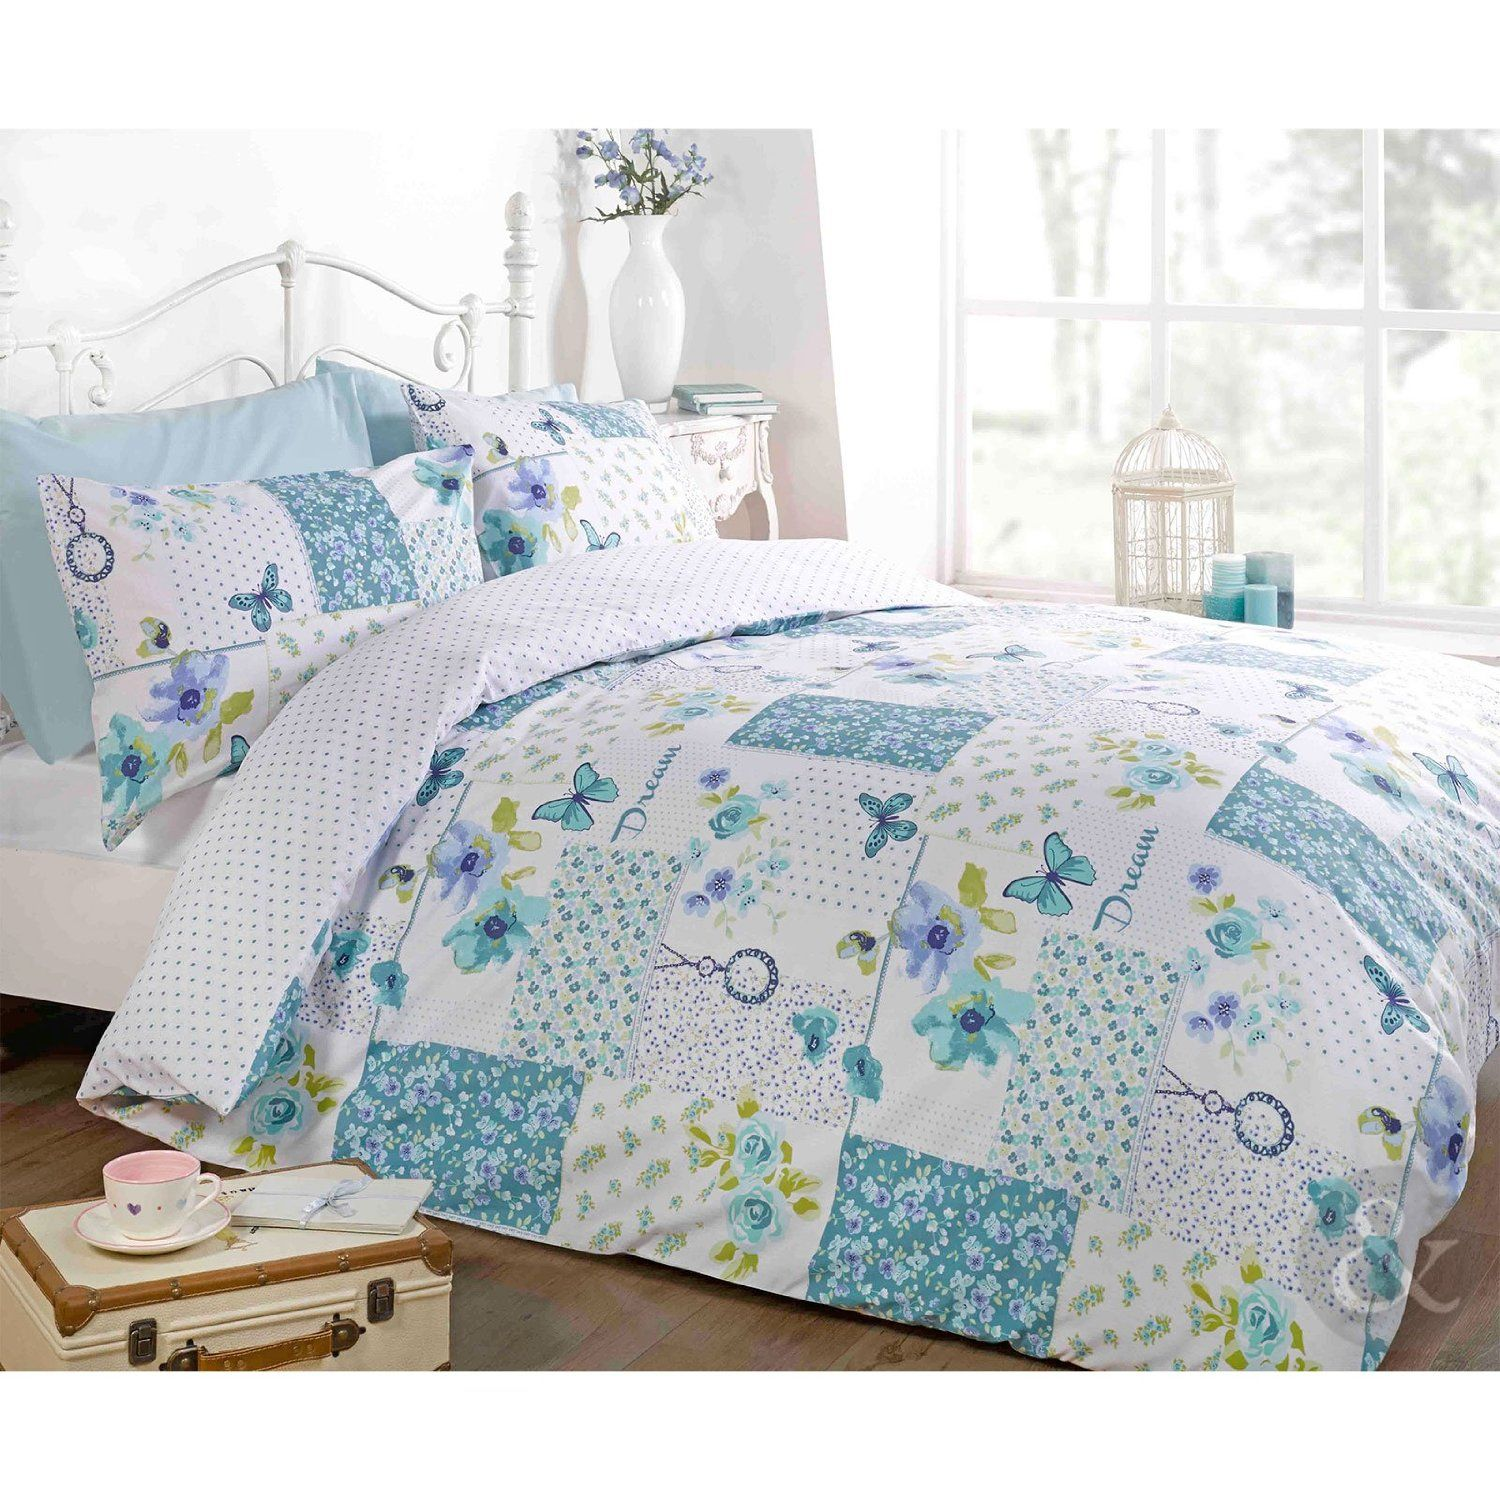 BUTTERFLY FLORAL PATCHWORK DUVET COVER - Reversible White Teal ... : patchwork quilt covers - Adamdwight.com